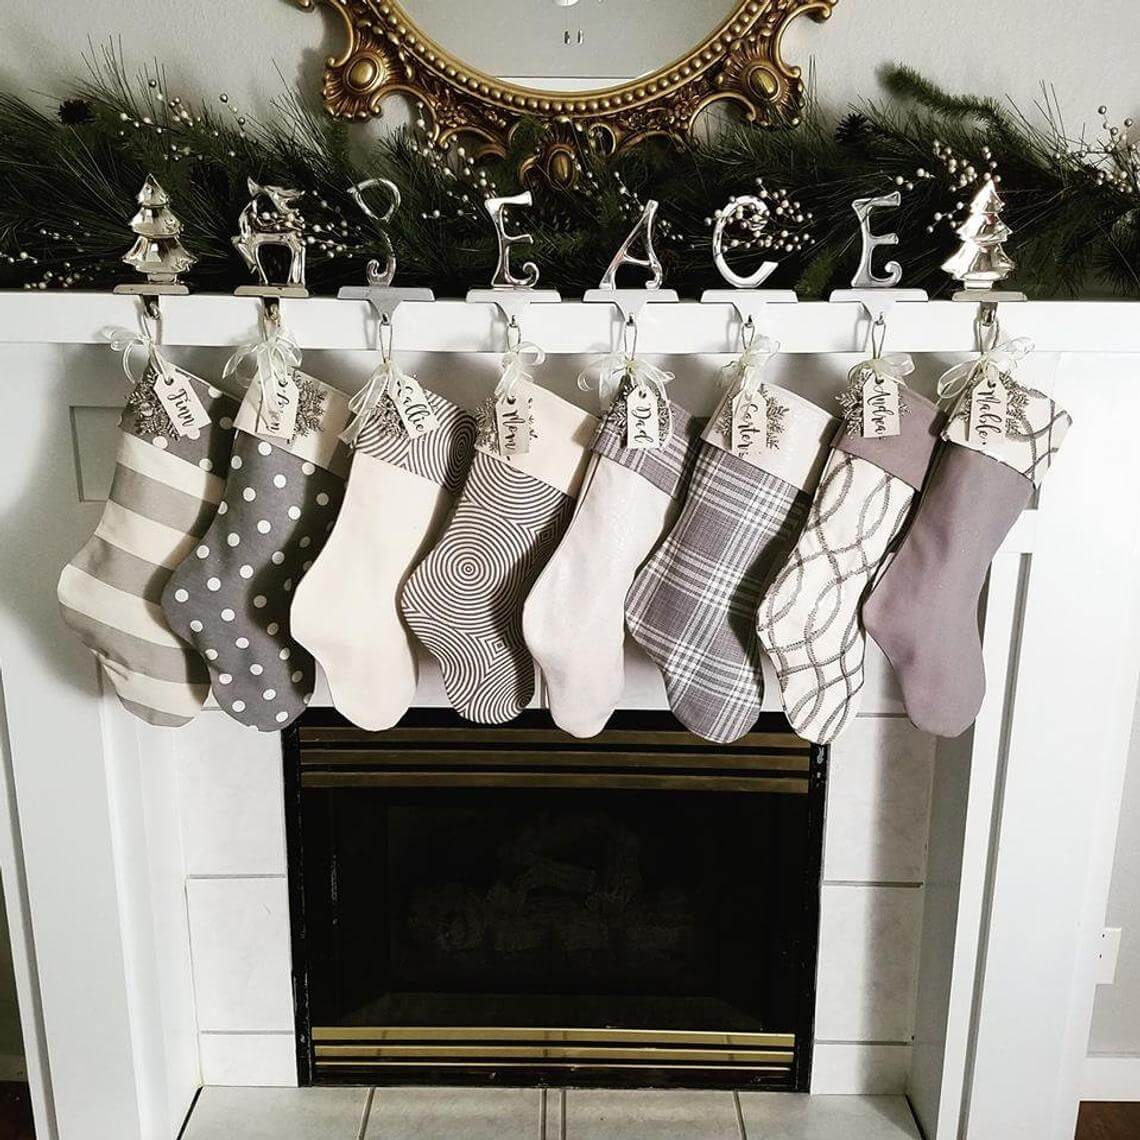 Coordinating Gray Stockings with Embroidered Name Tags